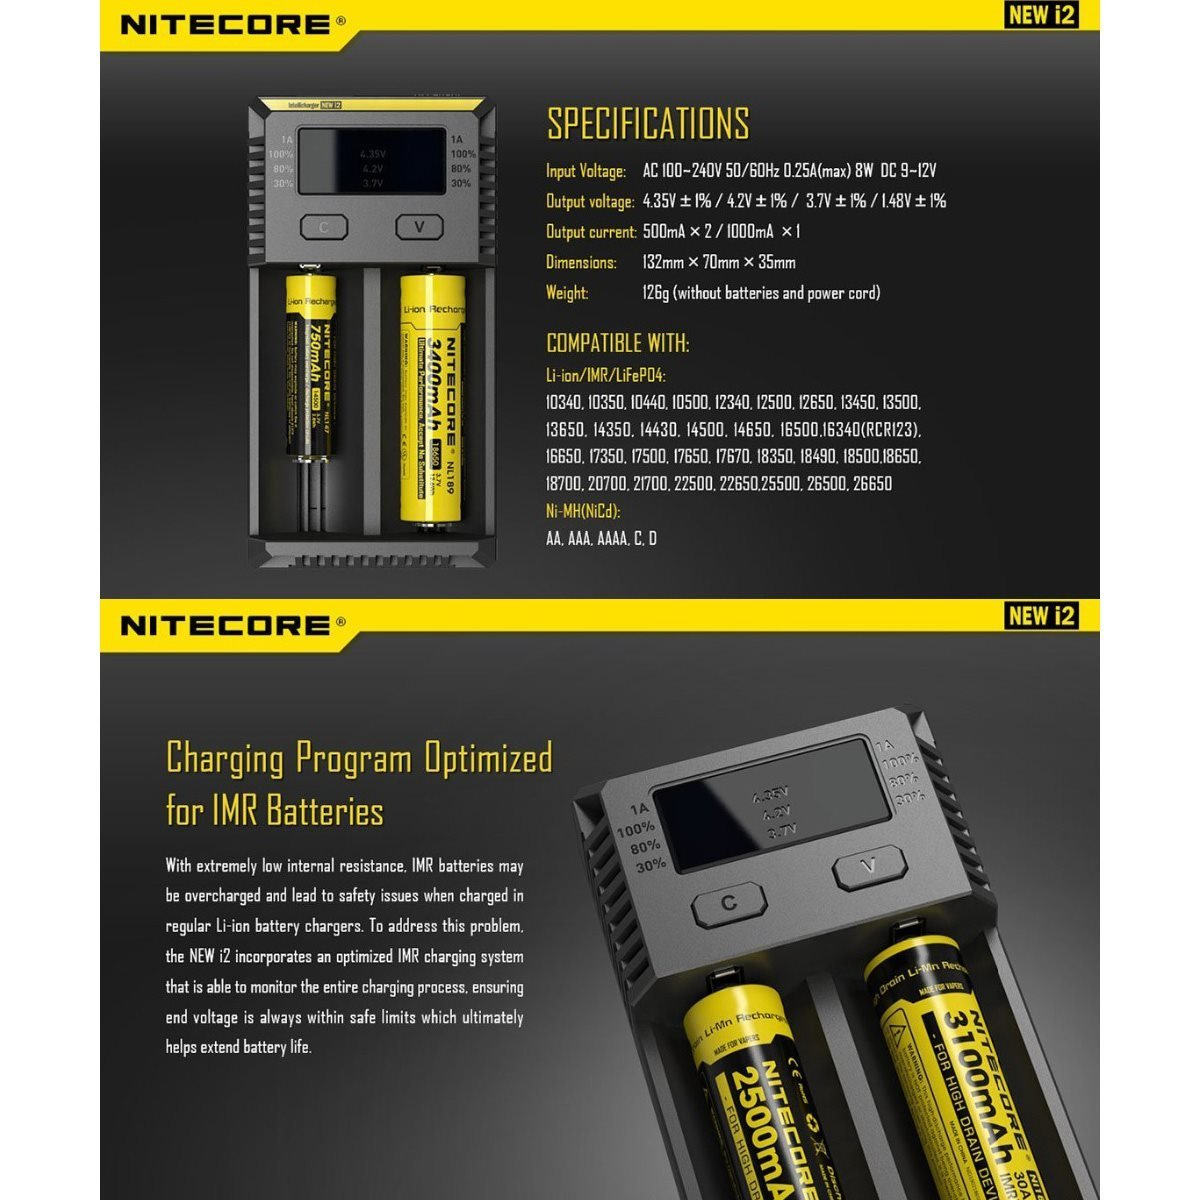 Nitecore i2 Intellicharger Universal Battery Charger 18650 18350 USA SELLER